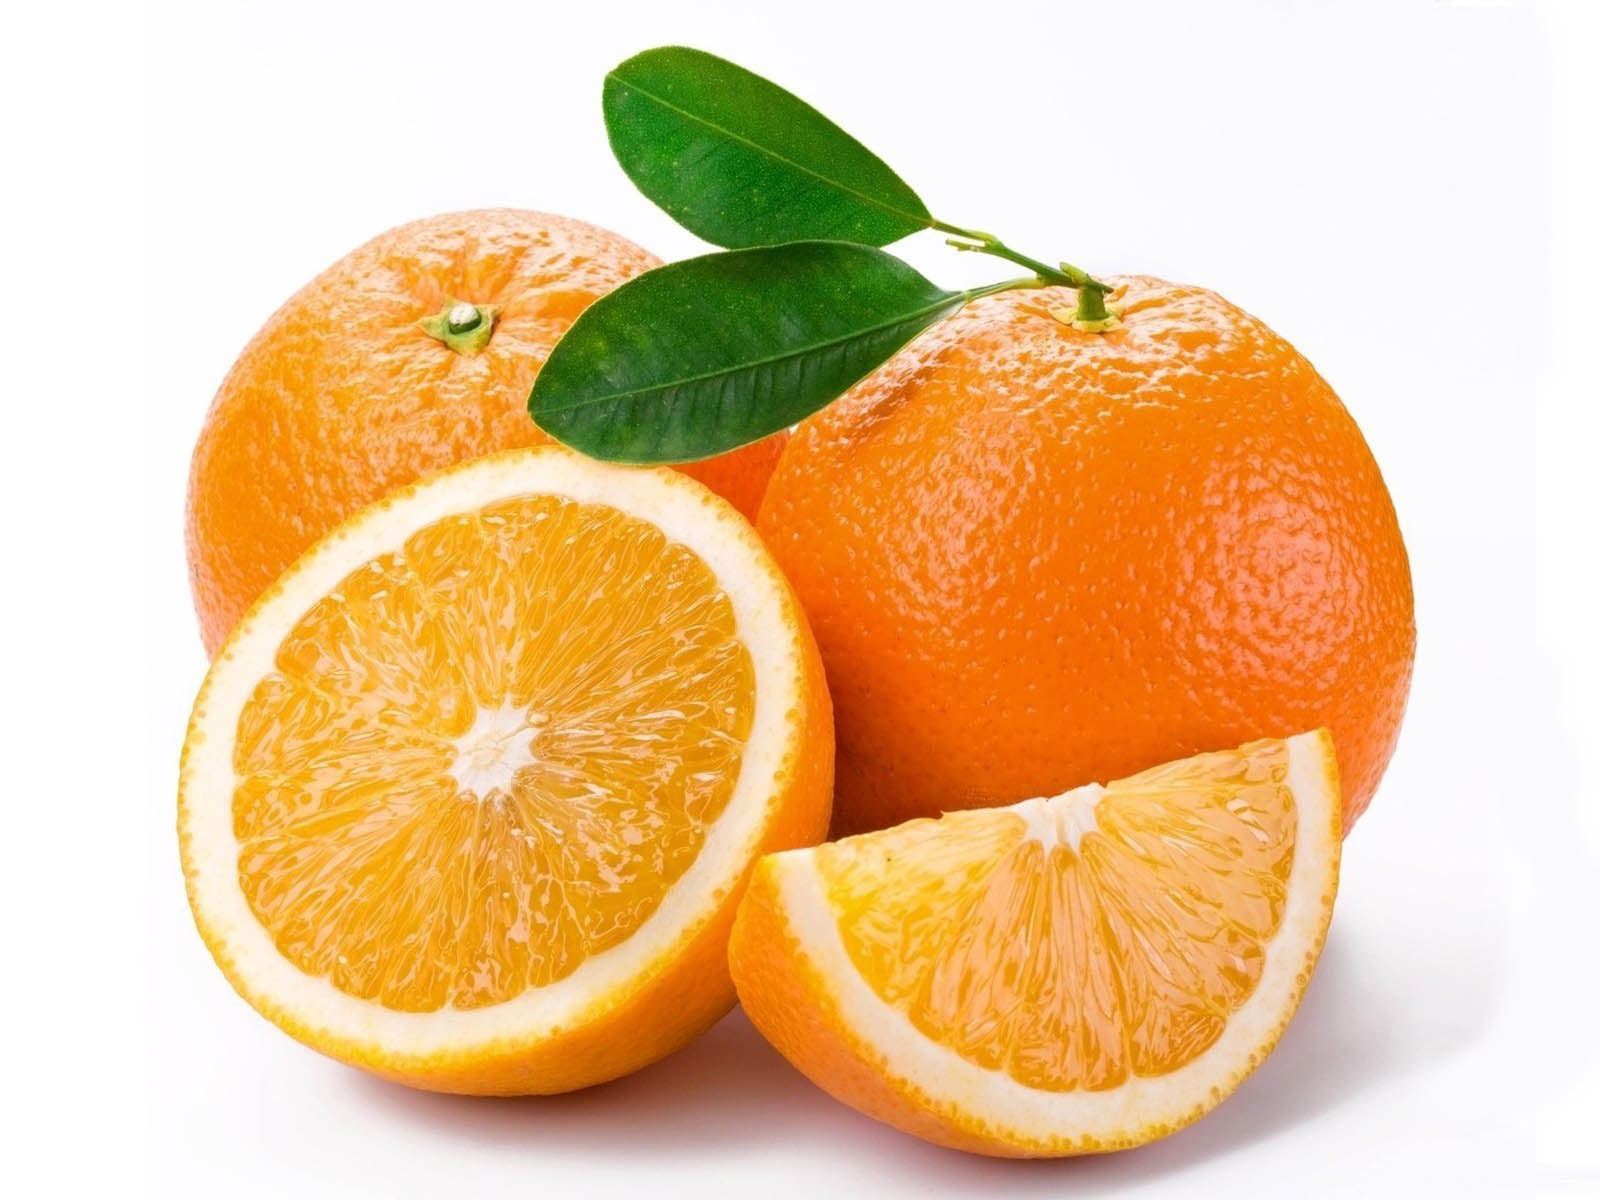 Tag: Orange Fruits Wallpapers, Images, Photos, Pictures and ...